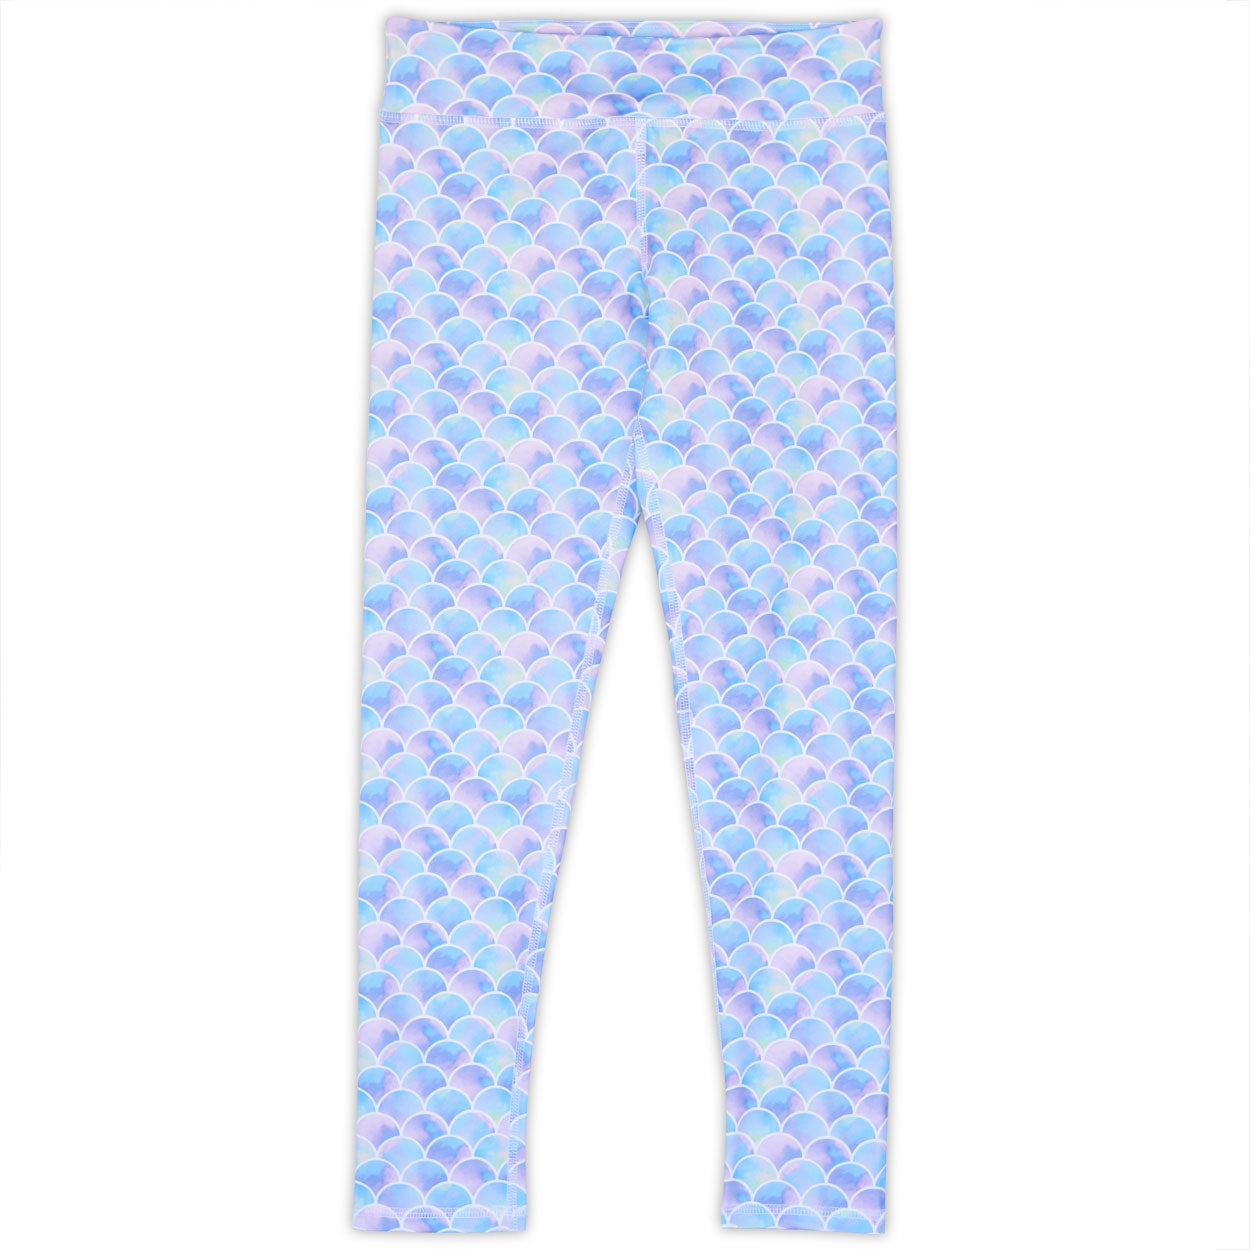 Scalie Girlie Hybrid Youth Leggings UPF 50+